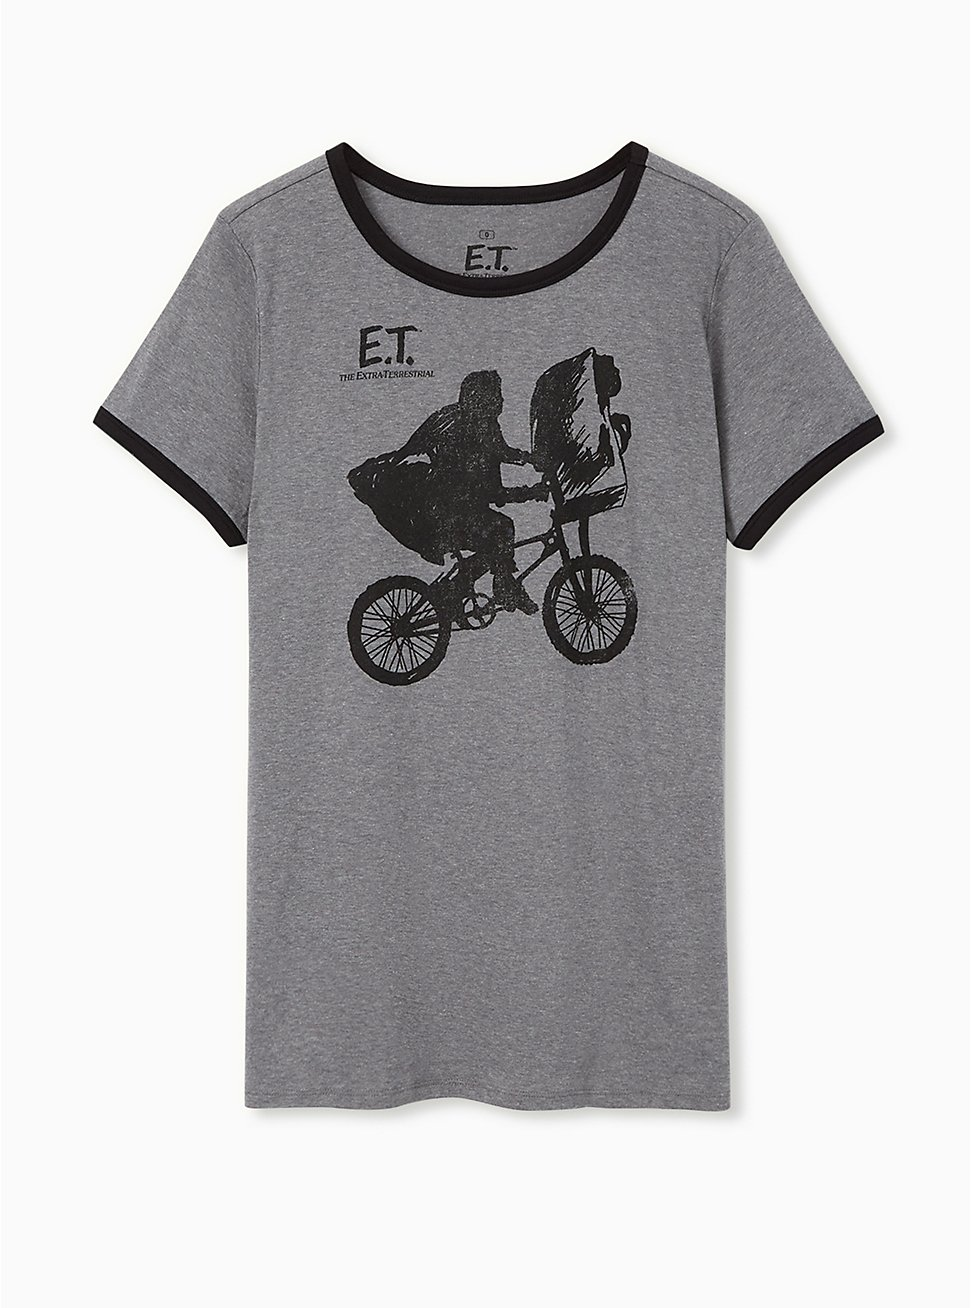 ET Classic Fit Ringer Tee - Heather Grey, MEDIUM HEATHER GREY, hi-res